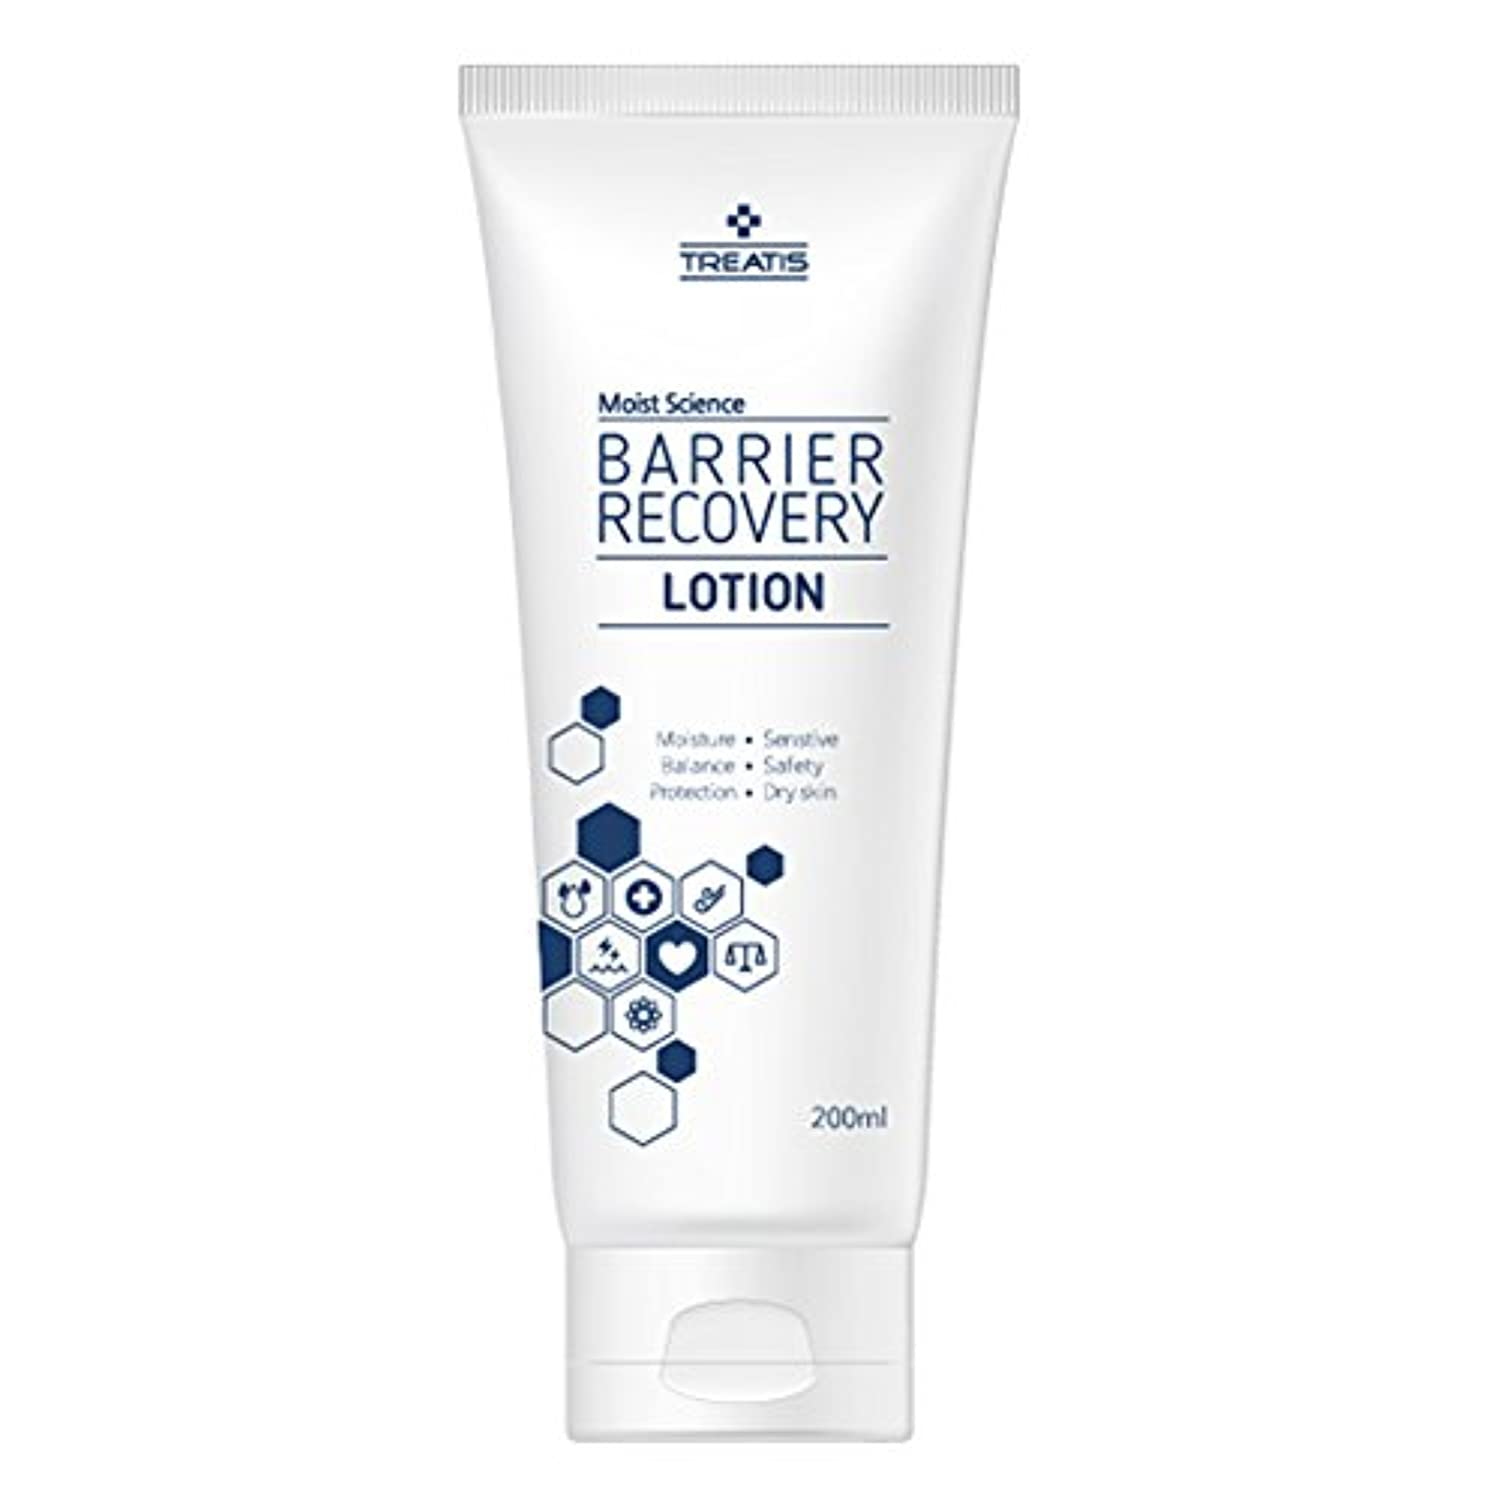 テストチート静かにTreatis barrier recovery lotion 7oz (200ml)/Moisture, Senstive, Balance, Safty, Protection, Dry skin [並行輸入品]